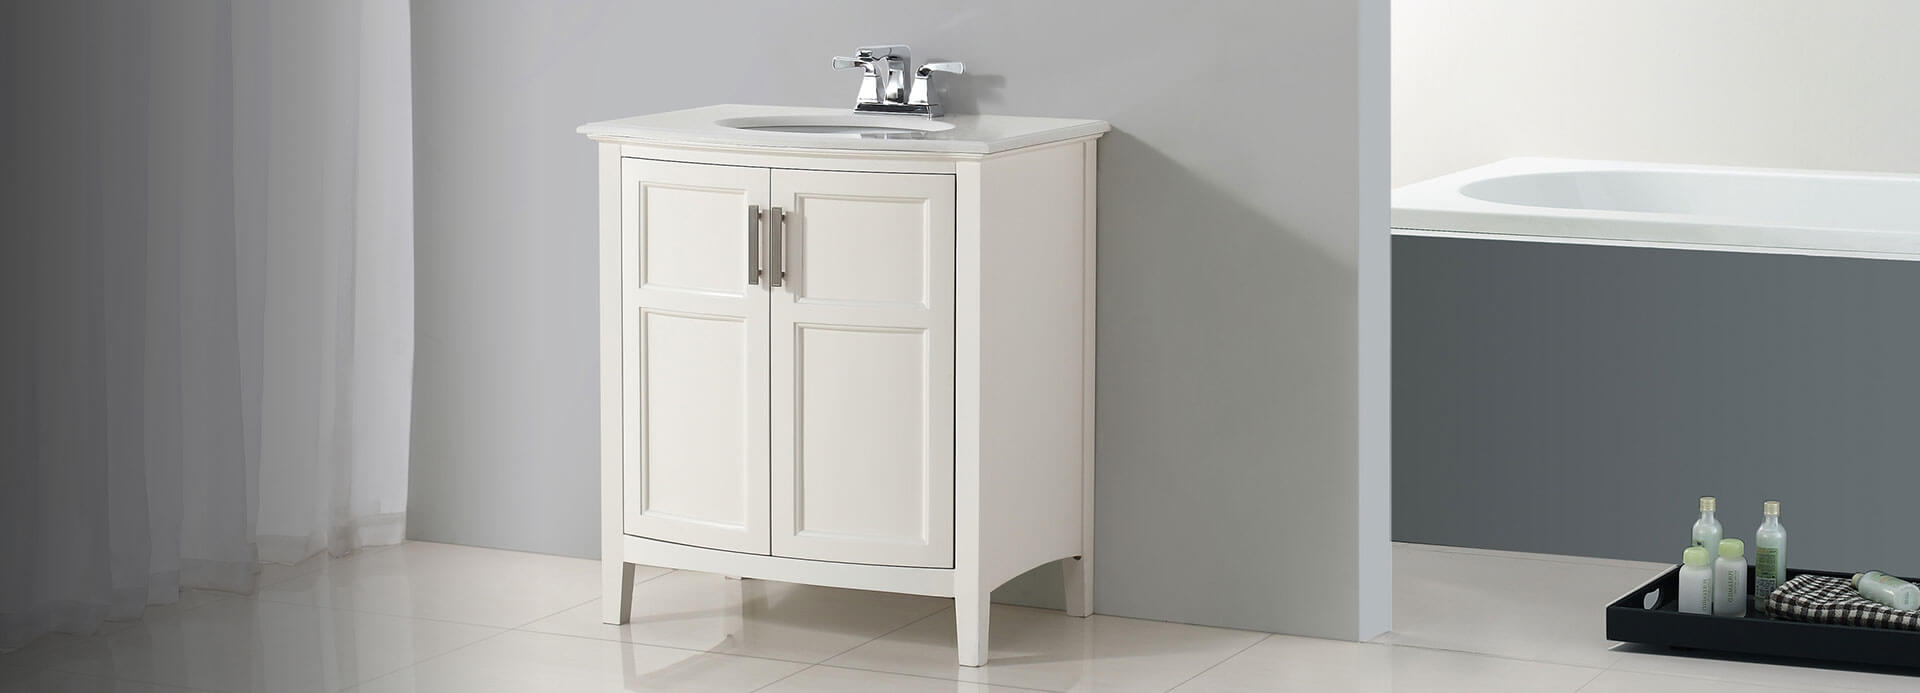 bathroom furniture top rated bathroom cabinets LOXZVOW